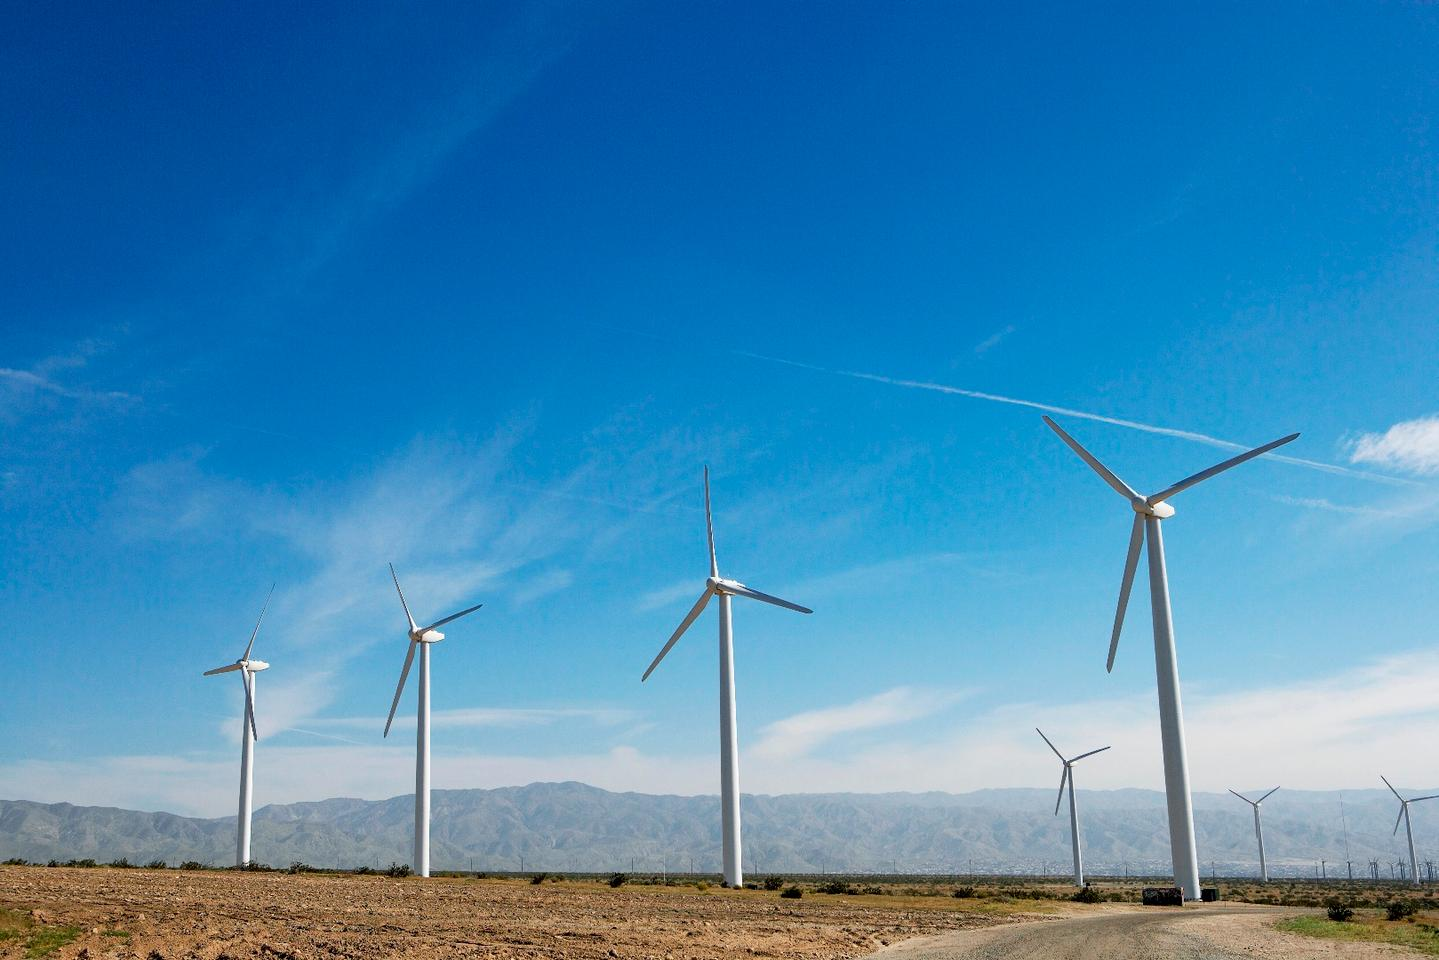 A new thermoplastic resin could make it possible to more fully recycle wind turbine blades, and to manufacture them using less energy